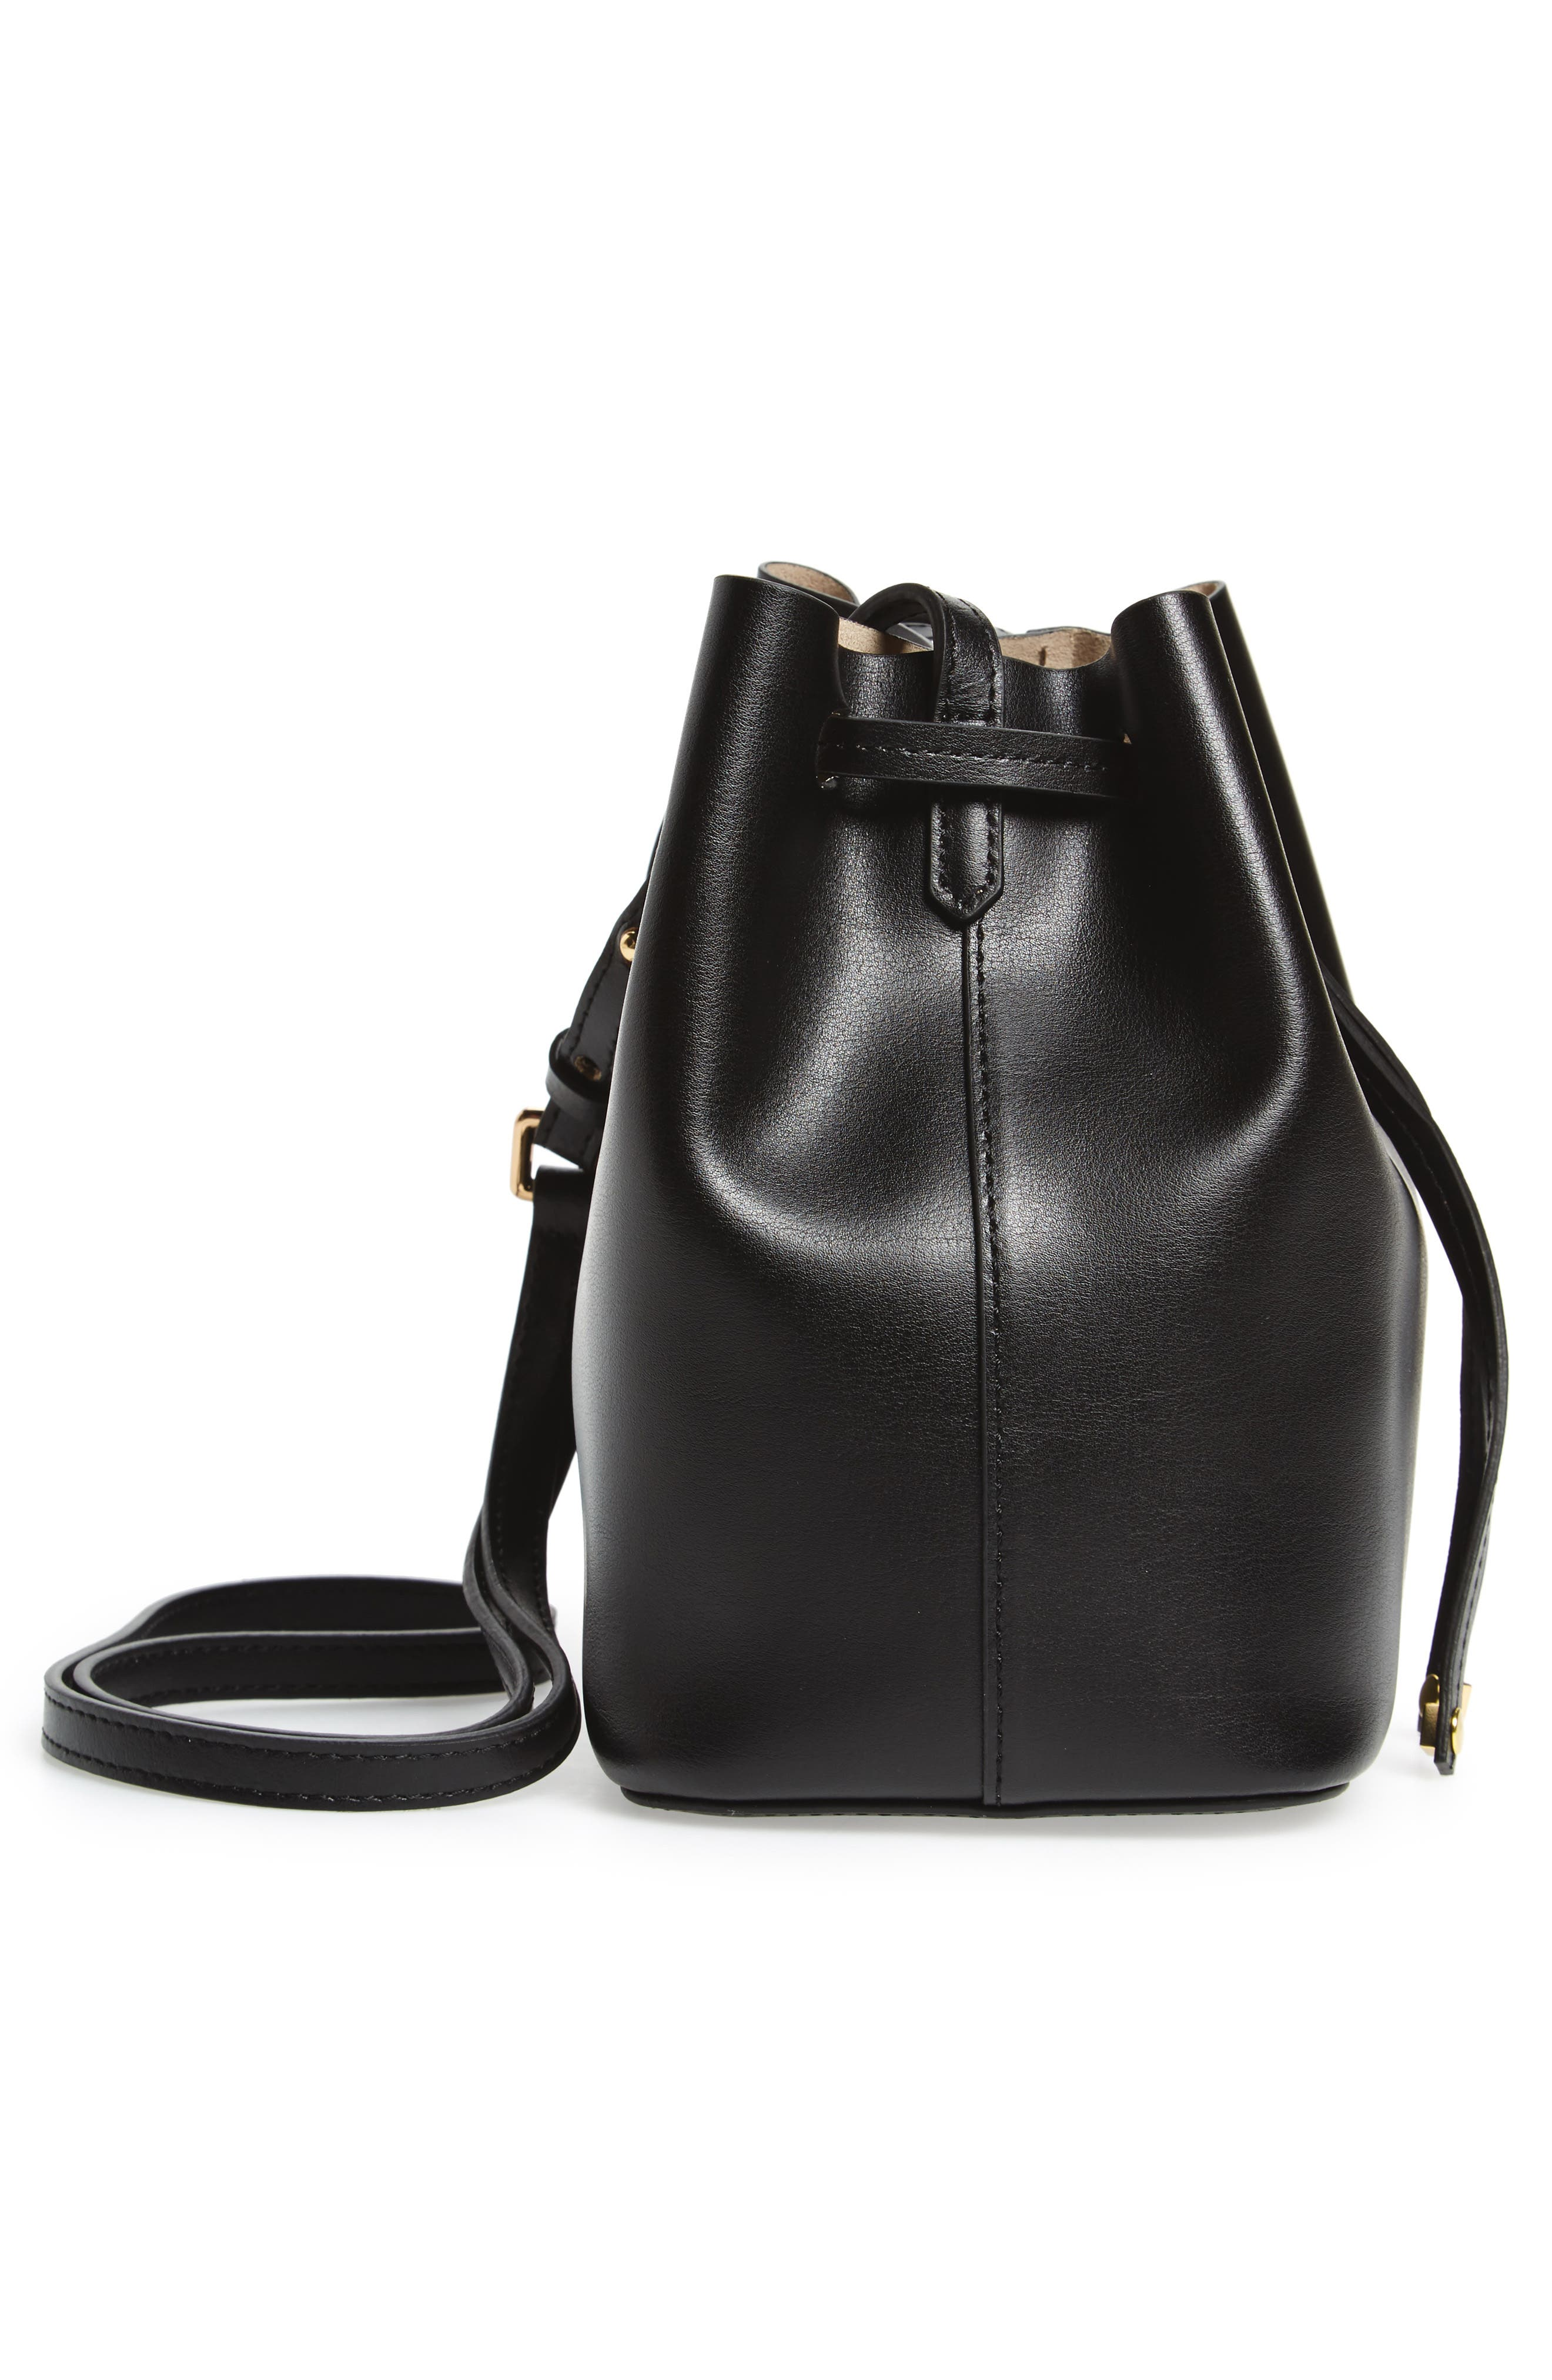 LODIS Small Silicon Valley Blake RFID Leather Bucket Bag,                             Alternate thumbnail 5, color,                             001